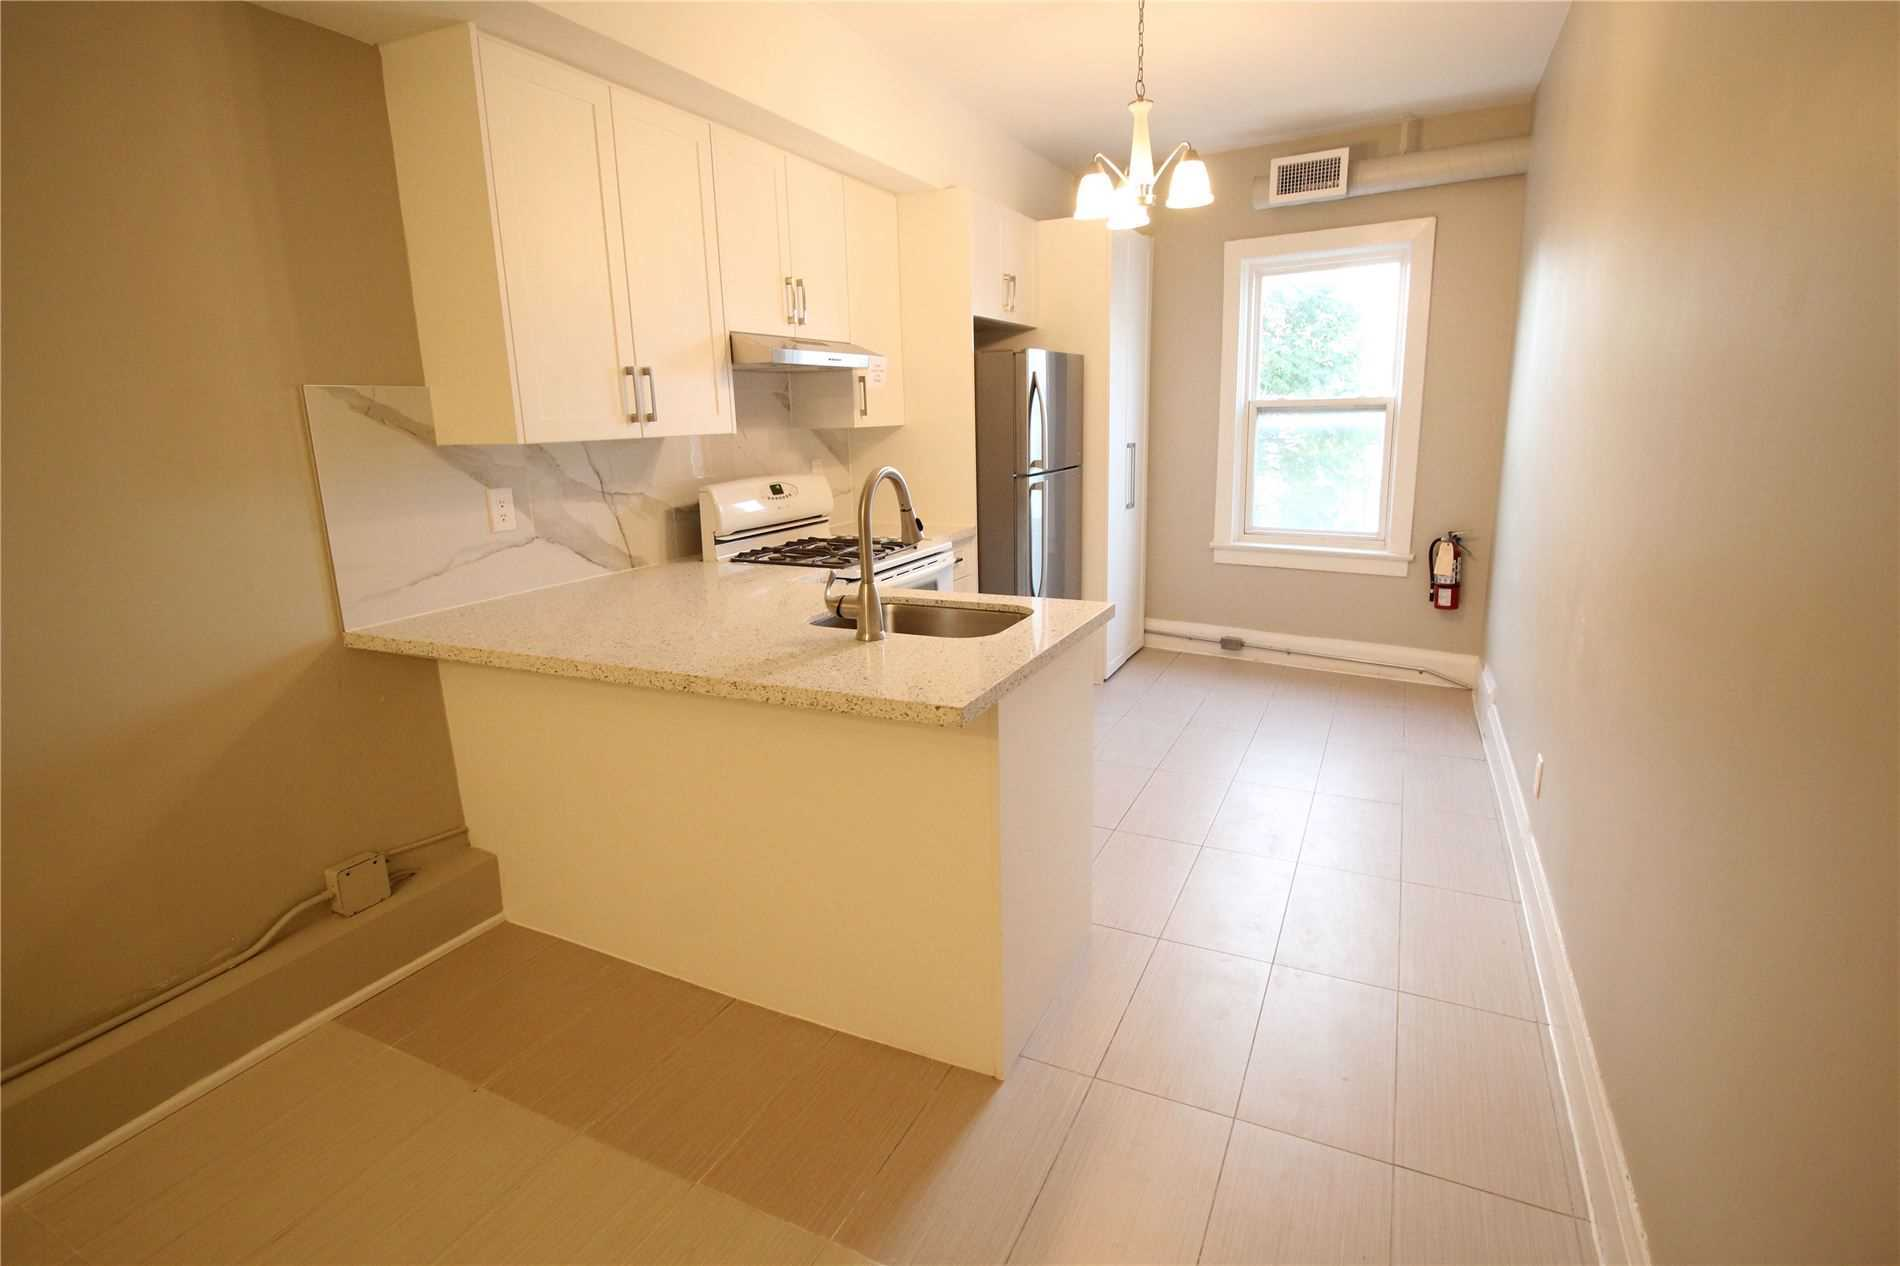 Semi-Detached For Lease In Toronto , 3 Bedrooms Bedrooms, ,1 BathroomBathrooms,Semi-Detached,For Lease,200,Dundas